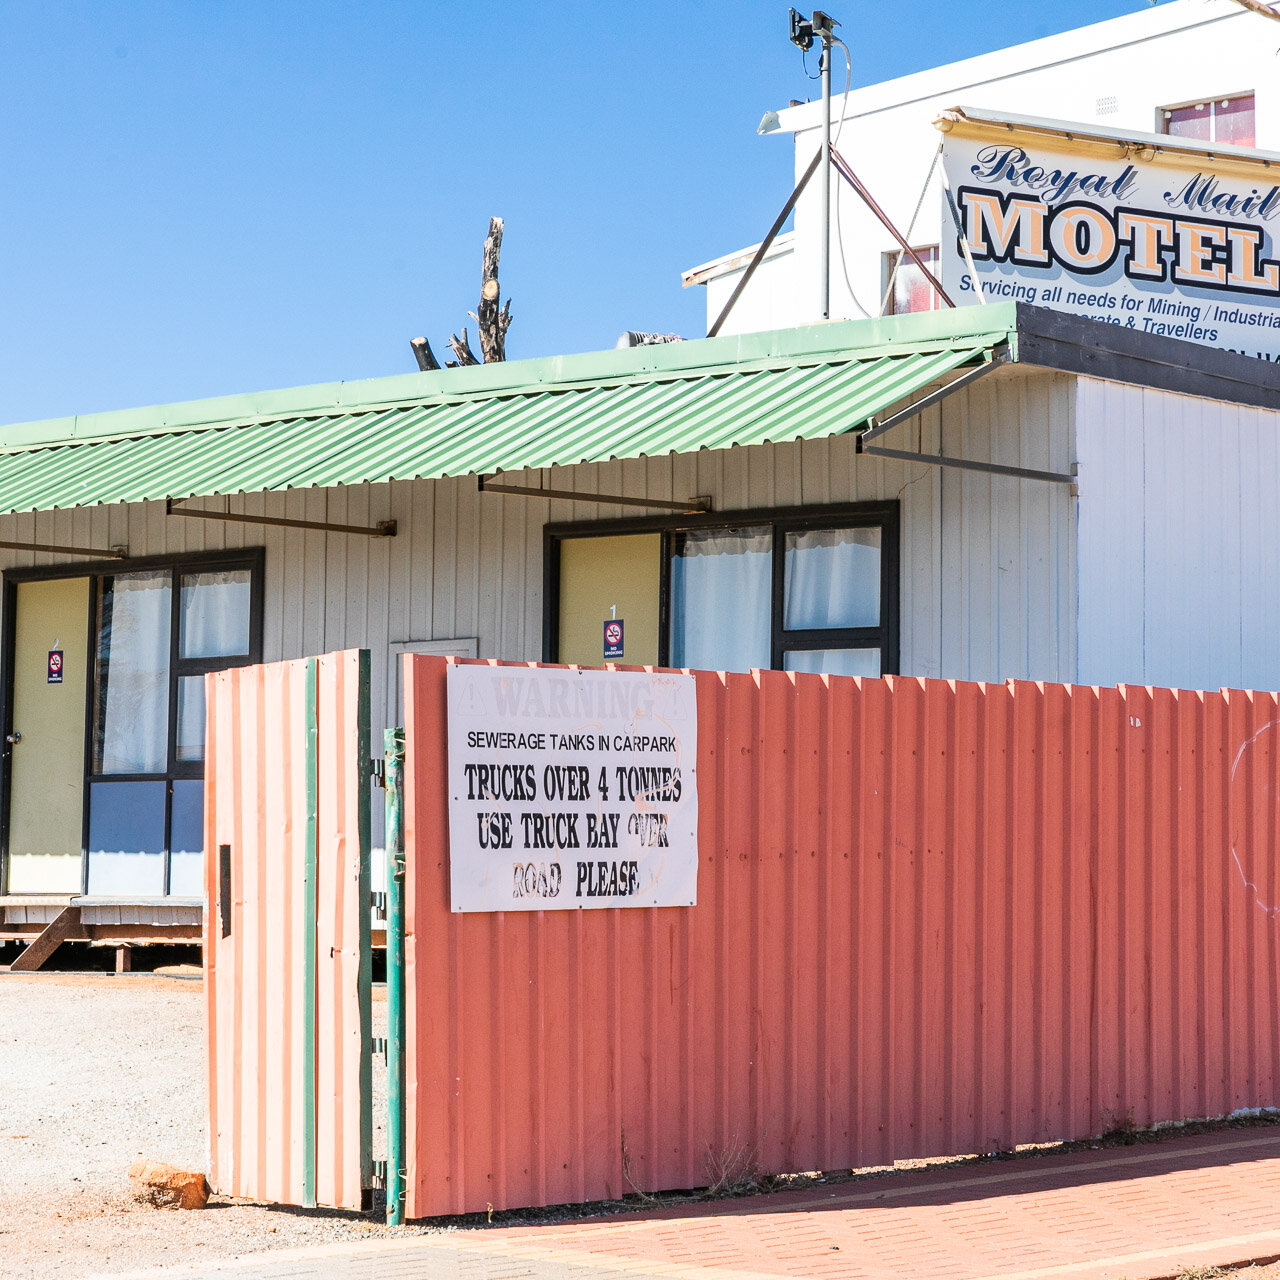 Not every motel has a sign warning of sewerage tanks in the car park! The Royal Motel in Meekatharra